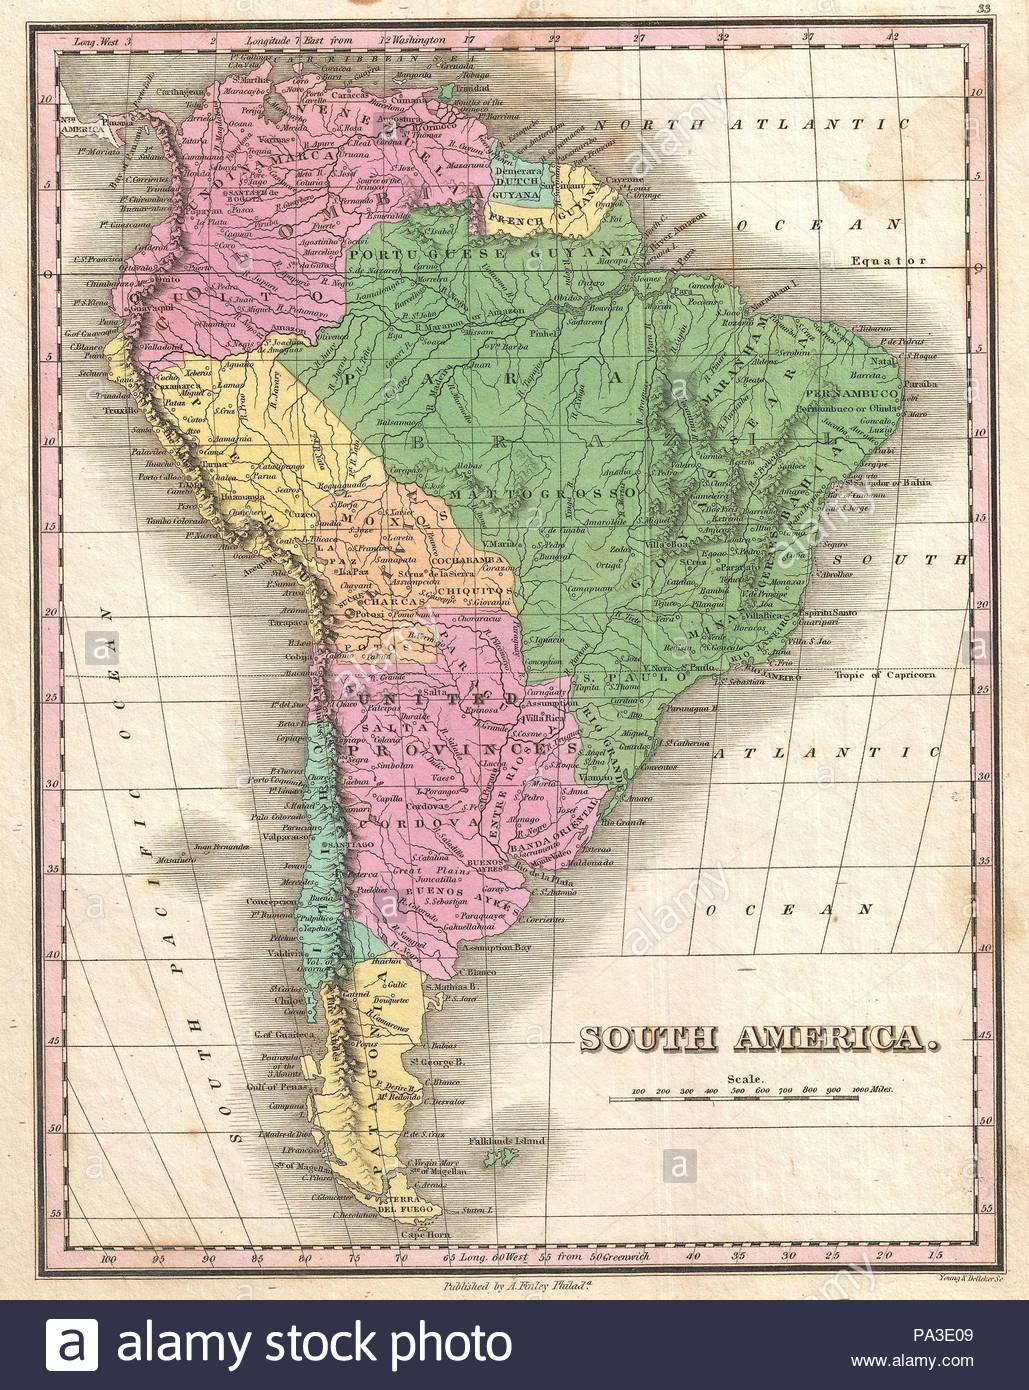 1827, Finley Map of South America, Anthony Finley mapmaker of the ...